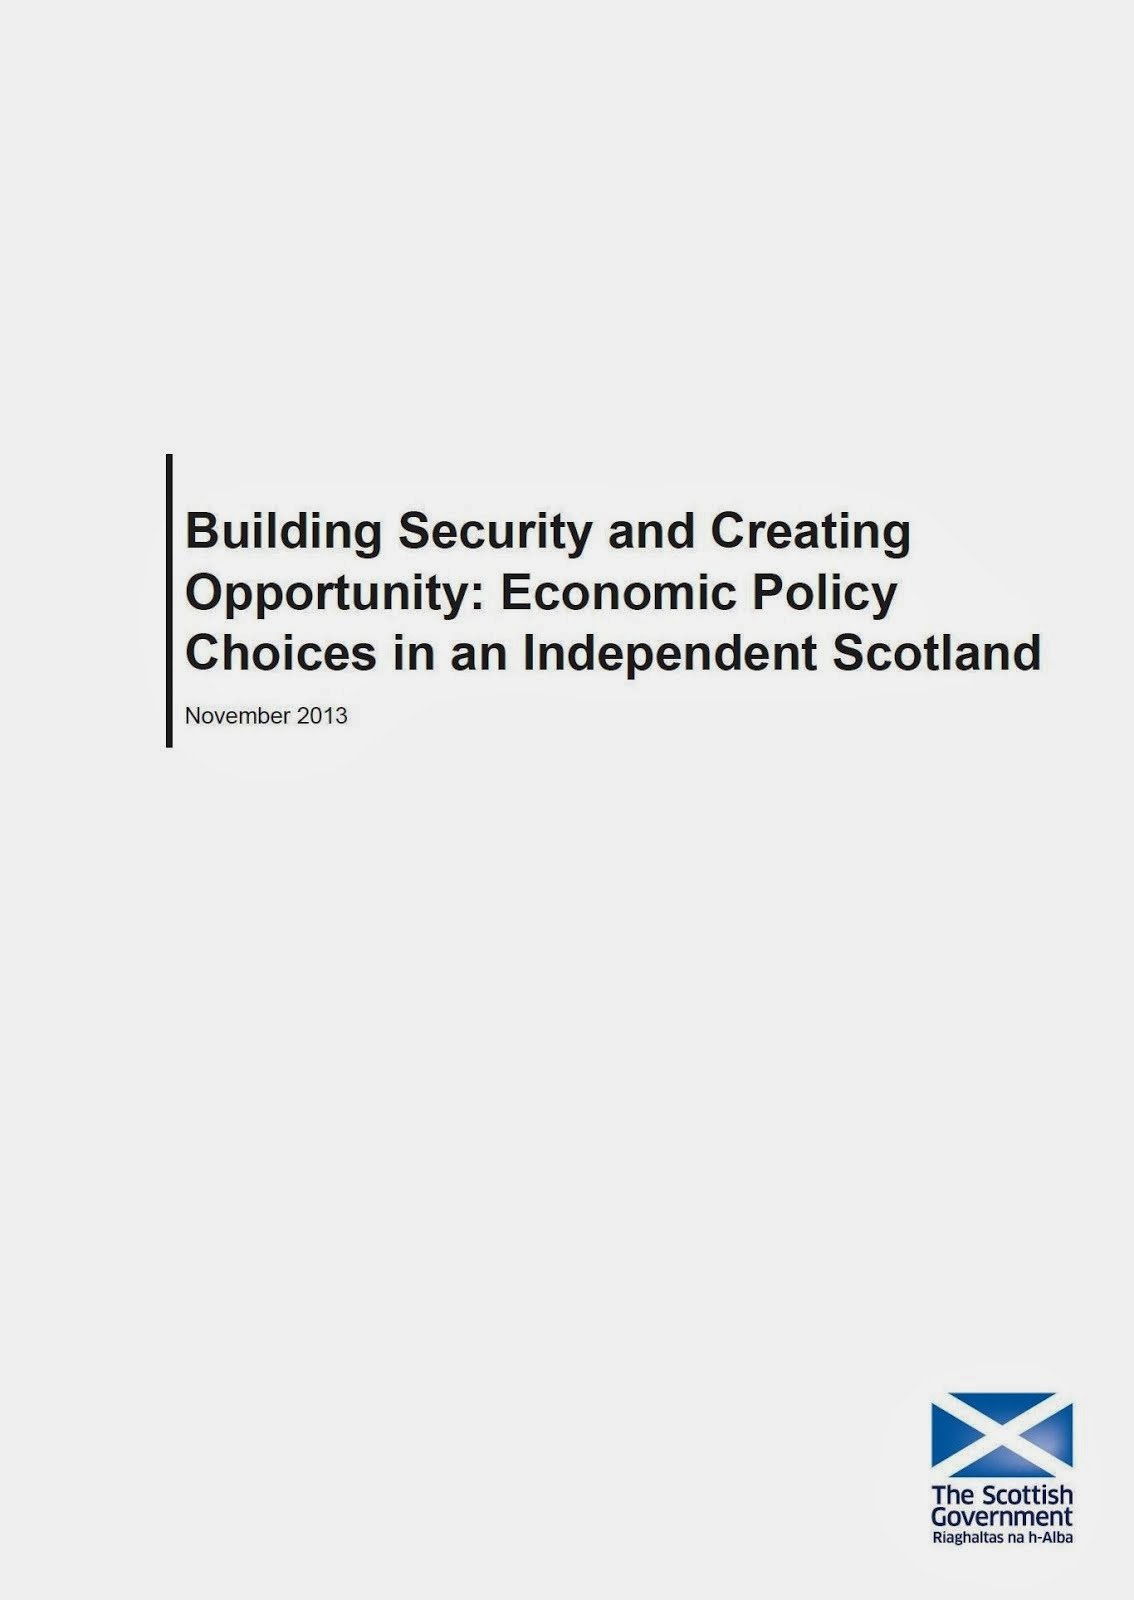 Economic Policy Choices in Independent Scotland